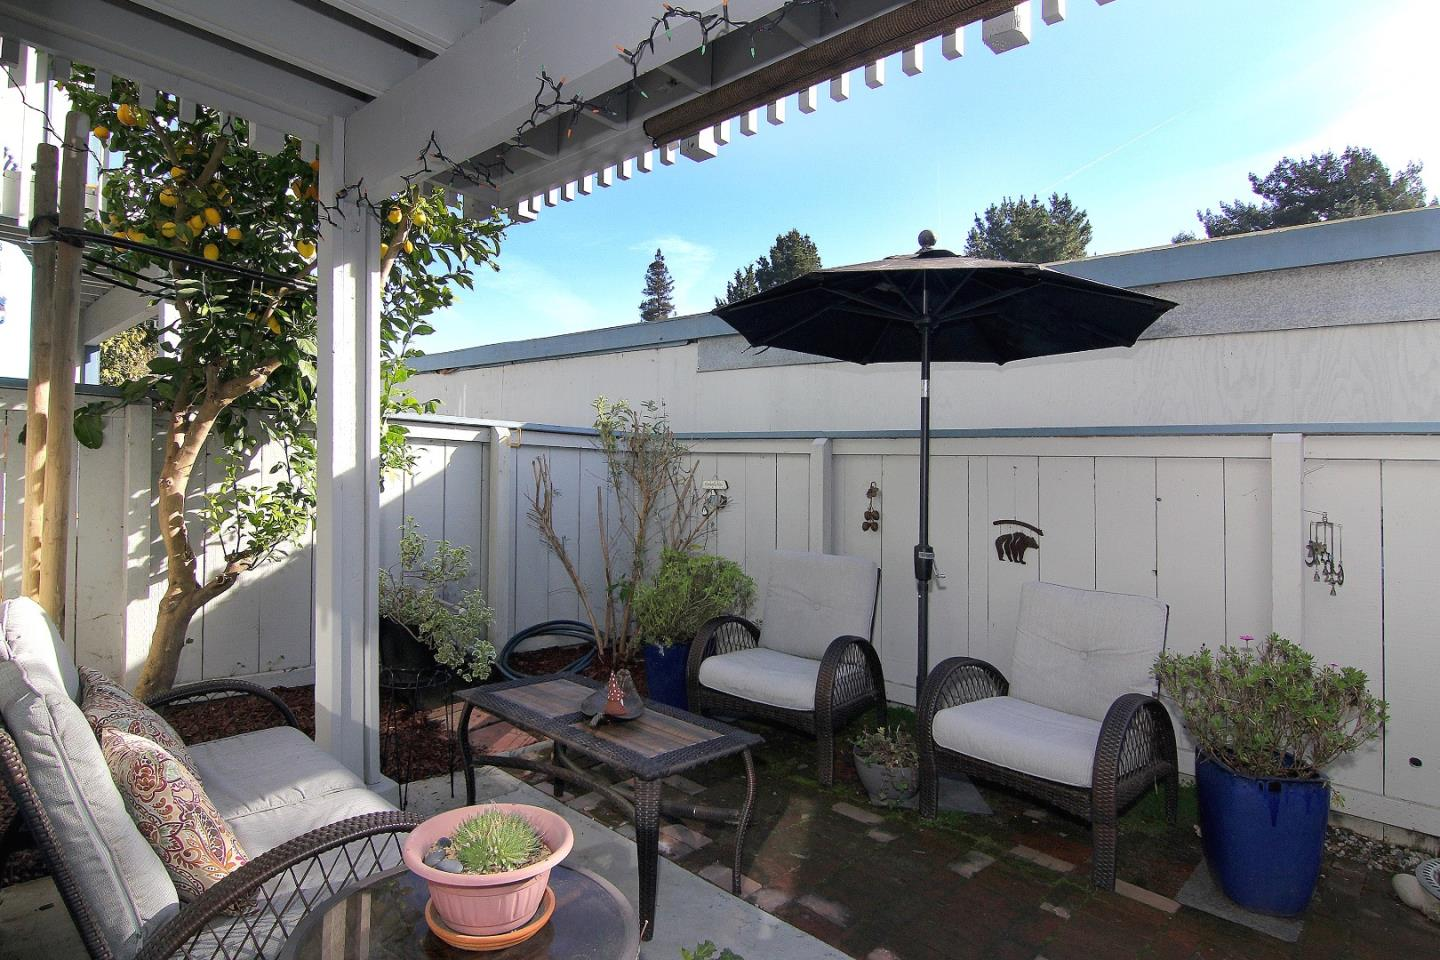 Do you like sunshine? Are you looking for a home in a great location? How do you feel about living in one of the best homes in the Villas of Capitola? If you answered yes to at least one of these questions, grab your Realtor & check out this home. This property is move-in ready! The location is outstanding! You'll feel happy and healthy as you walk to the organic grocery stores, visit the local library & walk to the beach. Yes, the BEACH! You'll really love where you live and that's important!